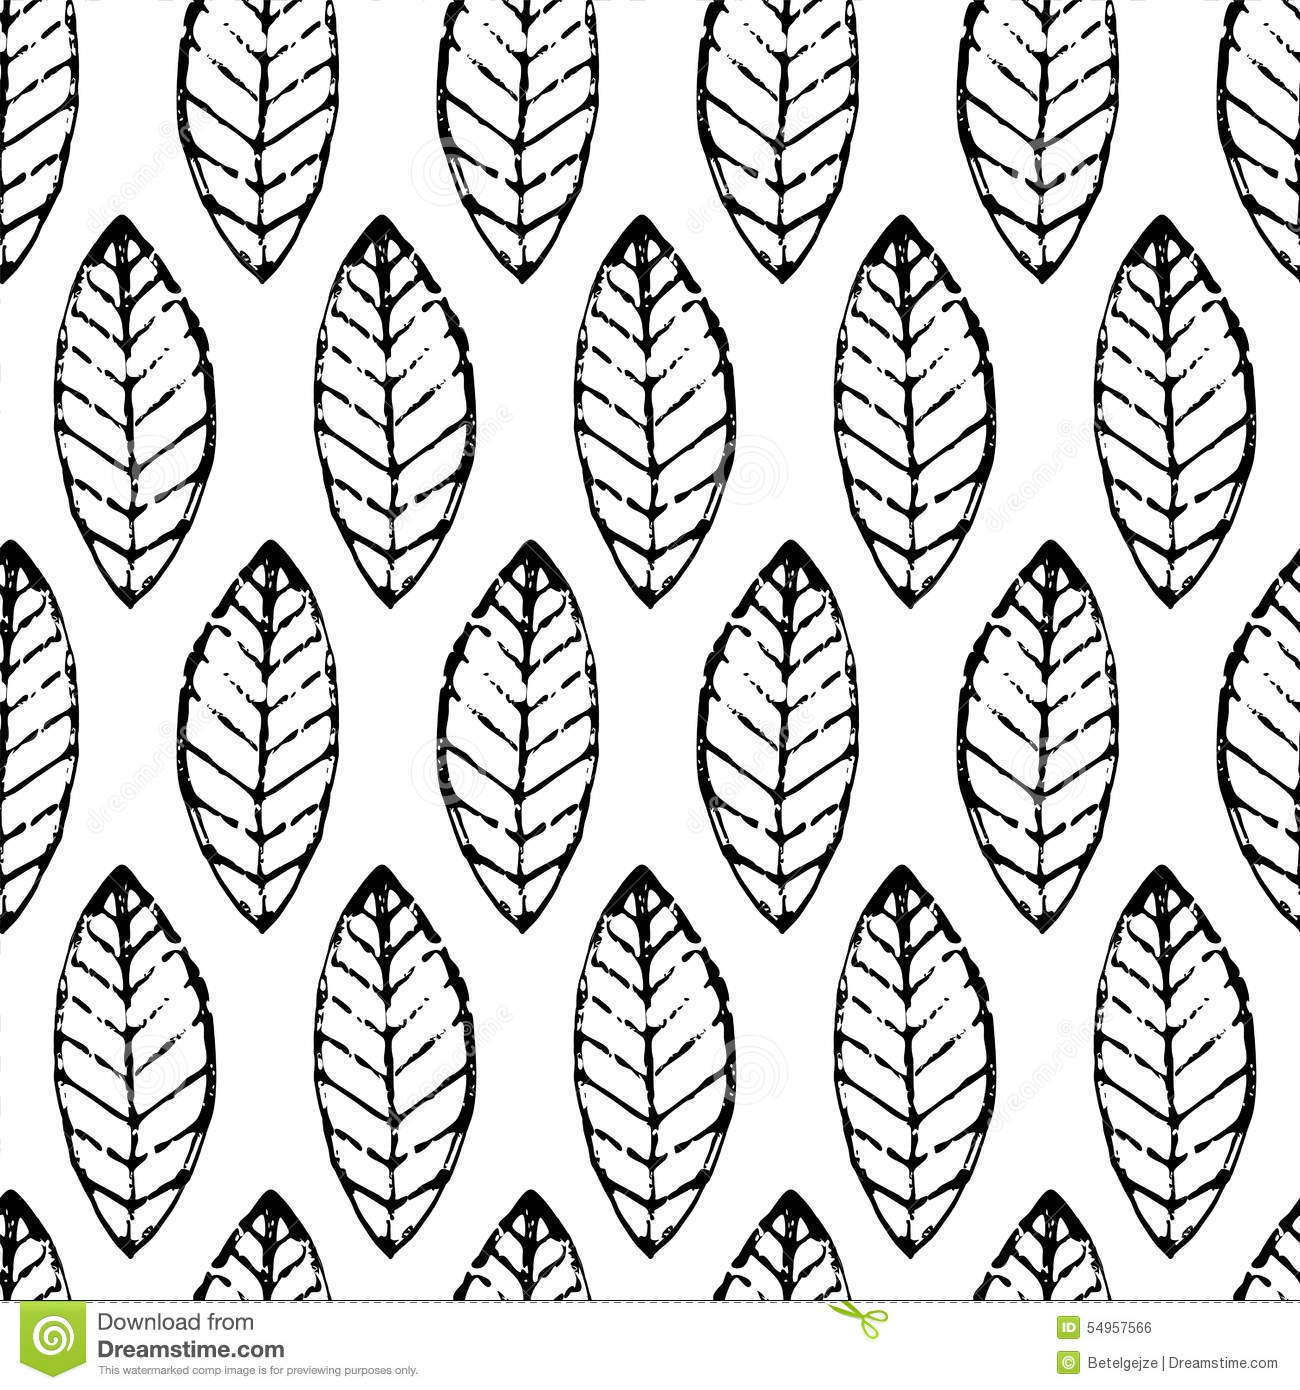 Watercolor hand drawn vector leaf seamless pattern. Abstract grunge black and white texture background. Nature organic line illus